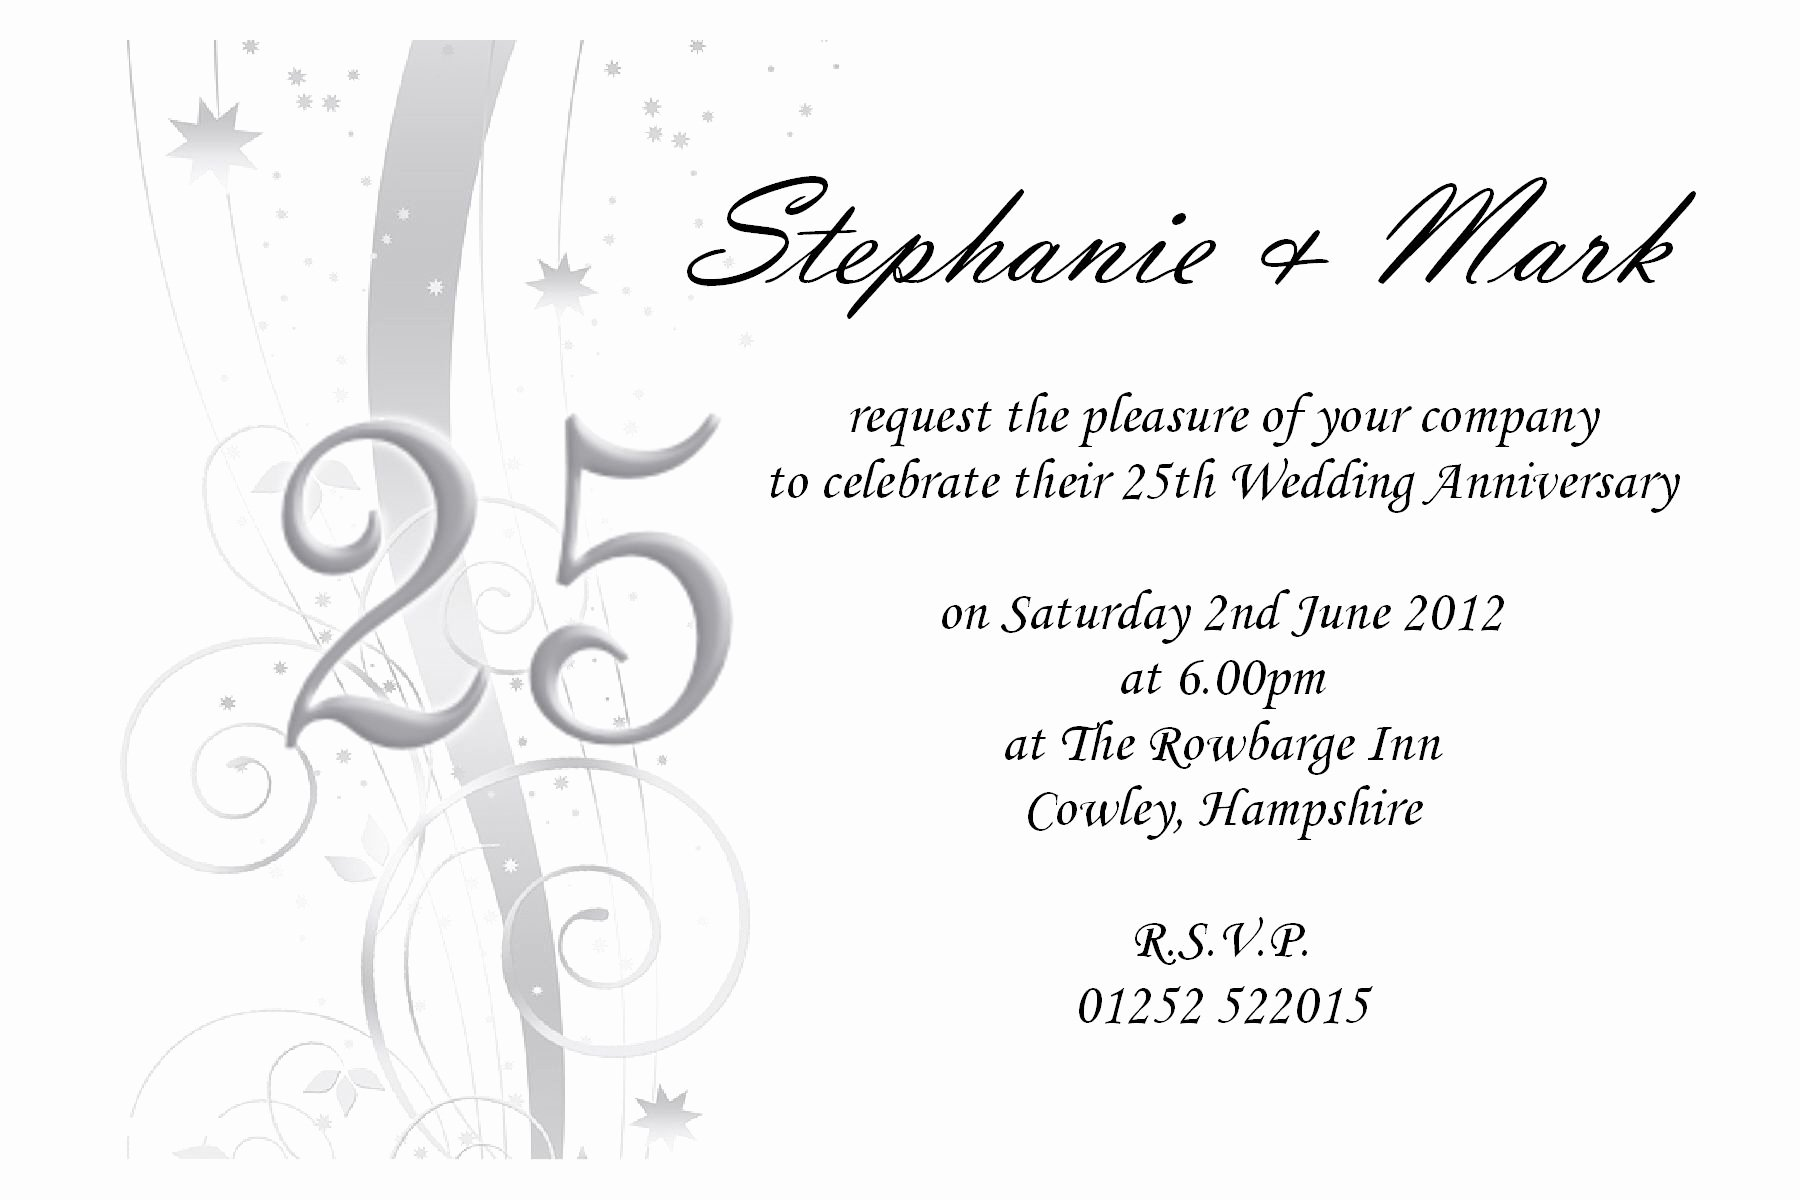 Wedding Anniversary Invite Template Best Of 25th Wedding Anniversary Invites 25th Wedding